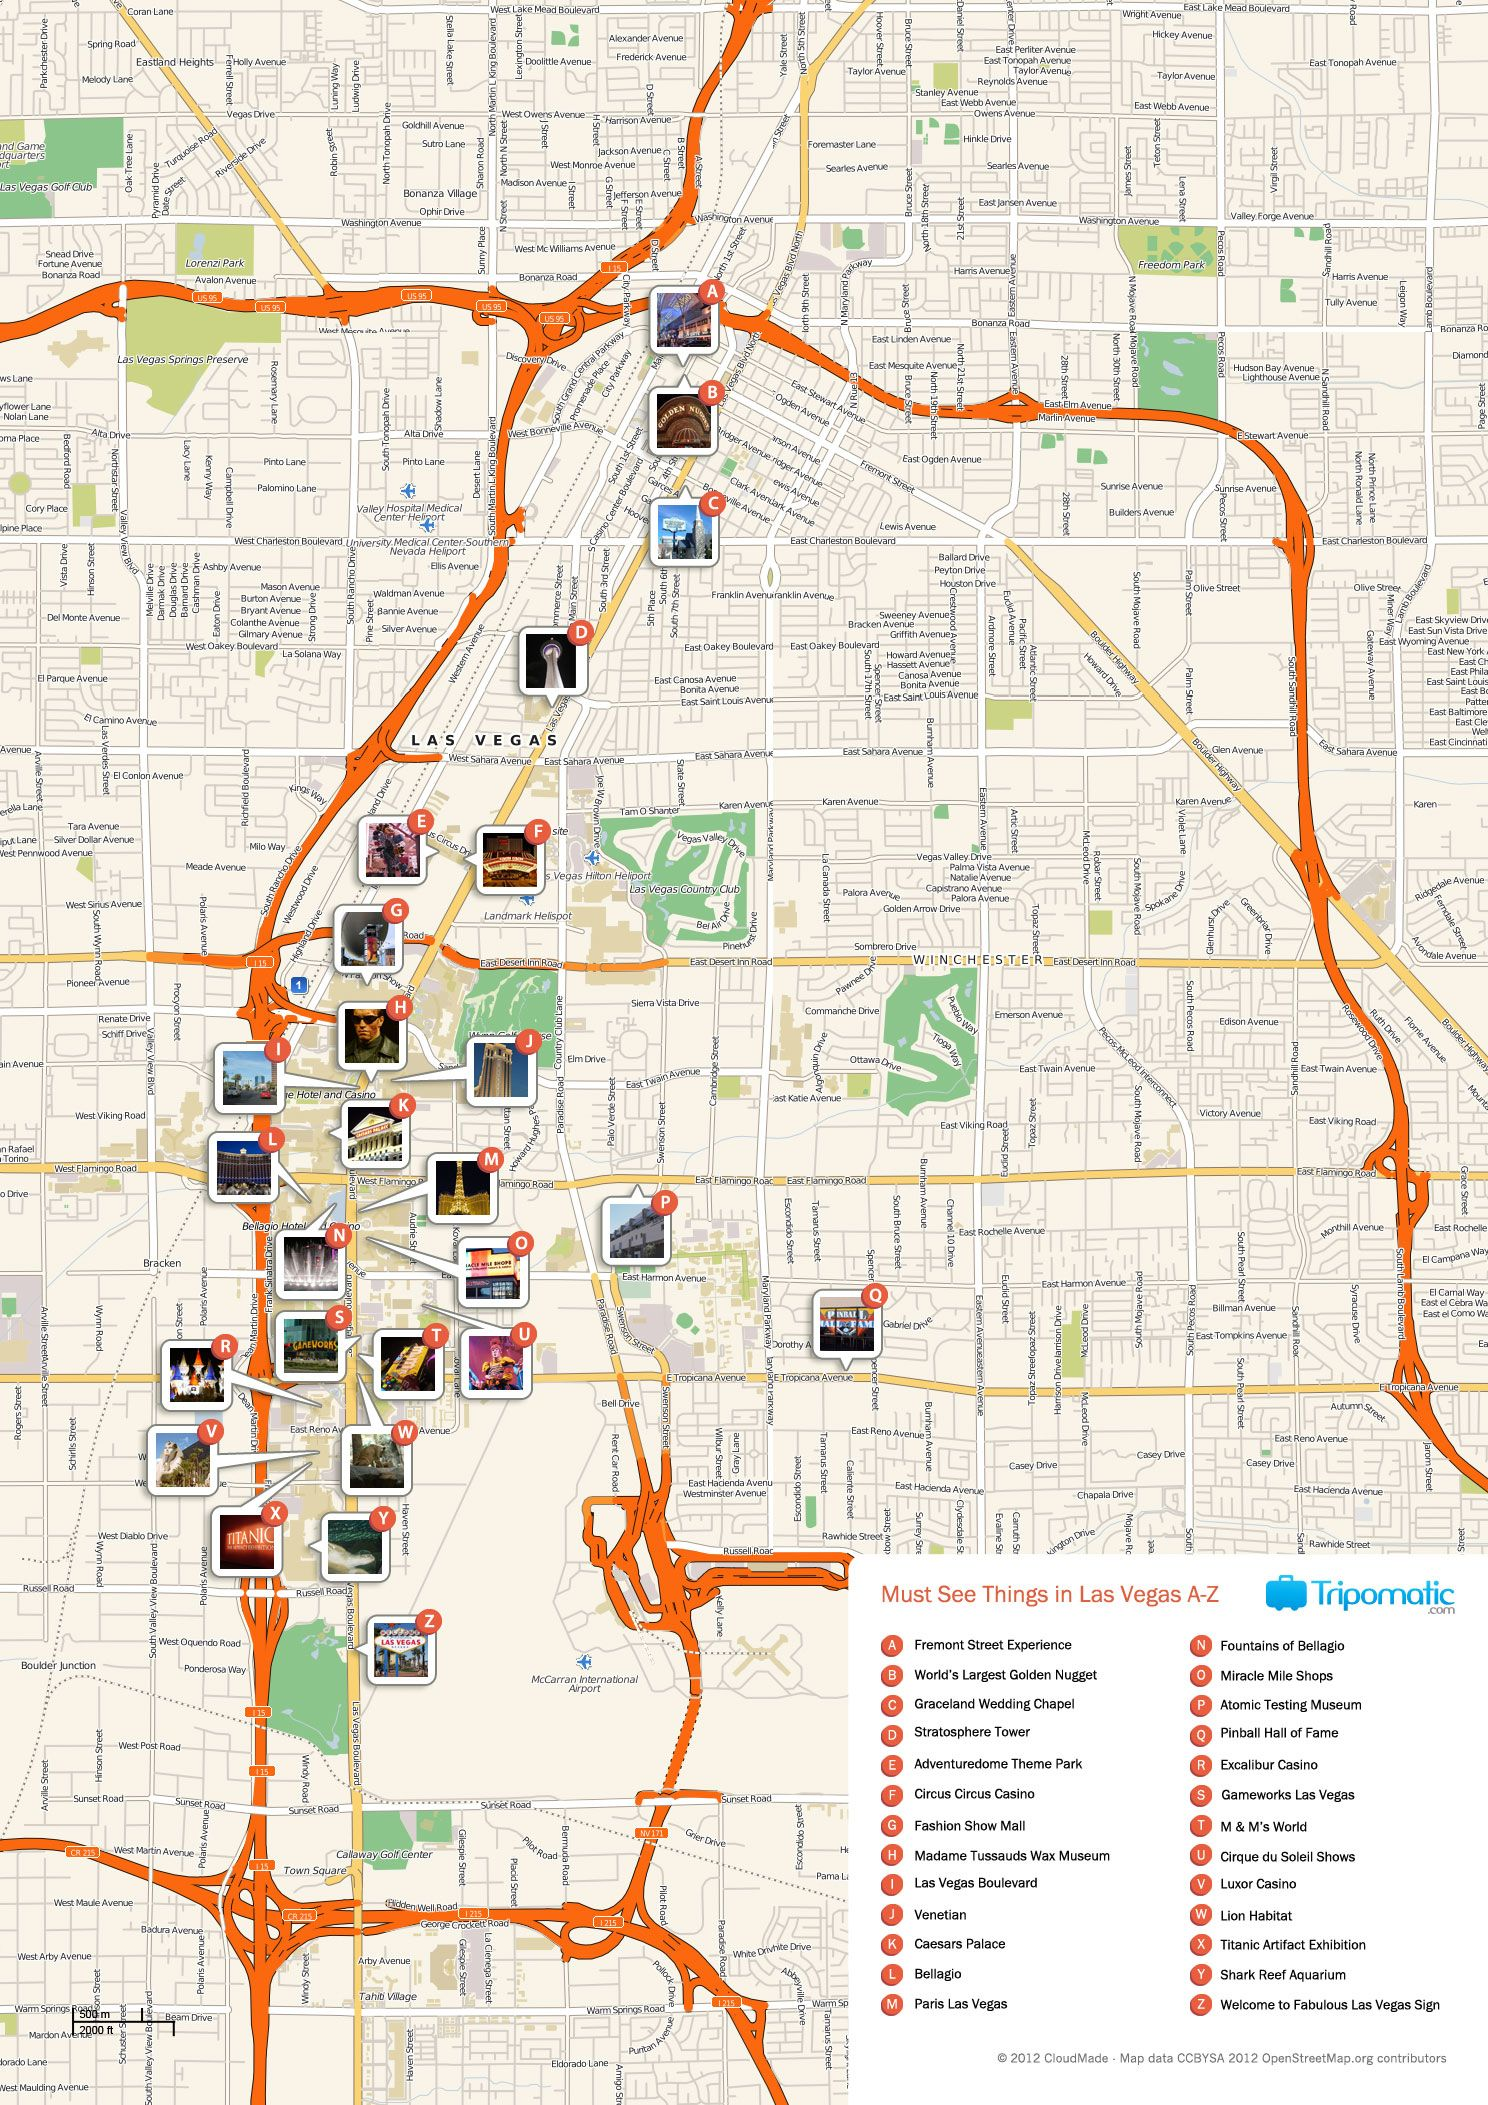 Free Printable Map of Las Vegas attractions. | Free Tourist ...